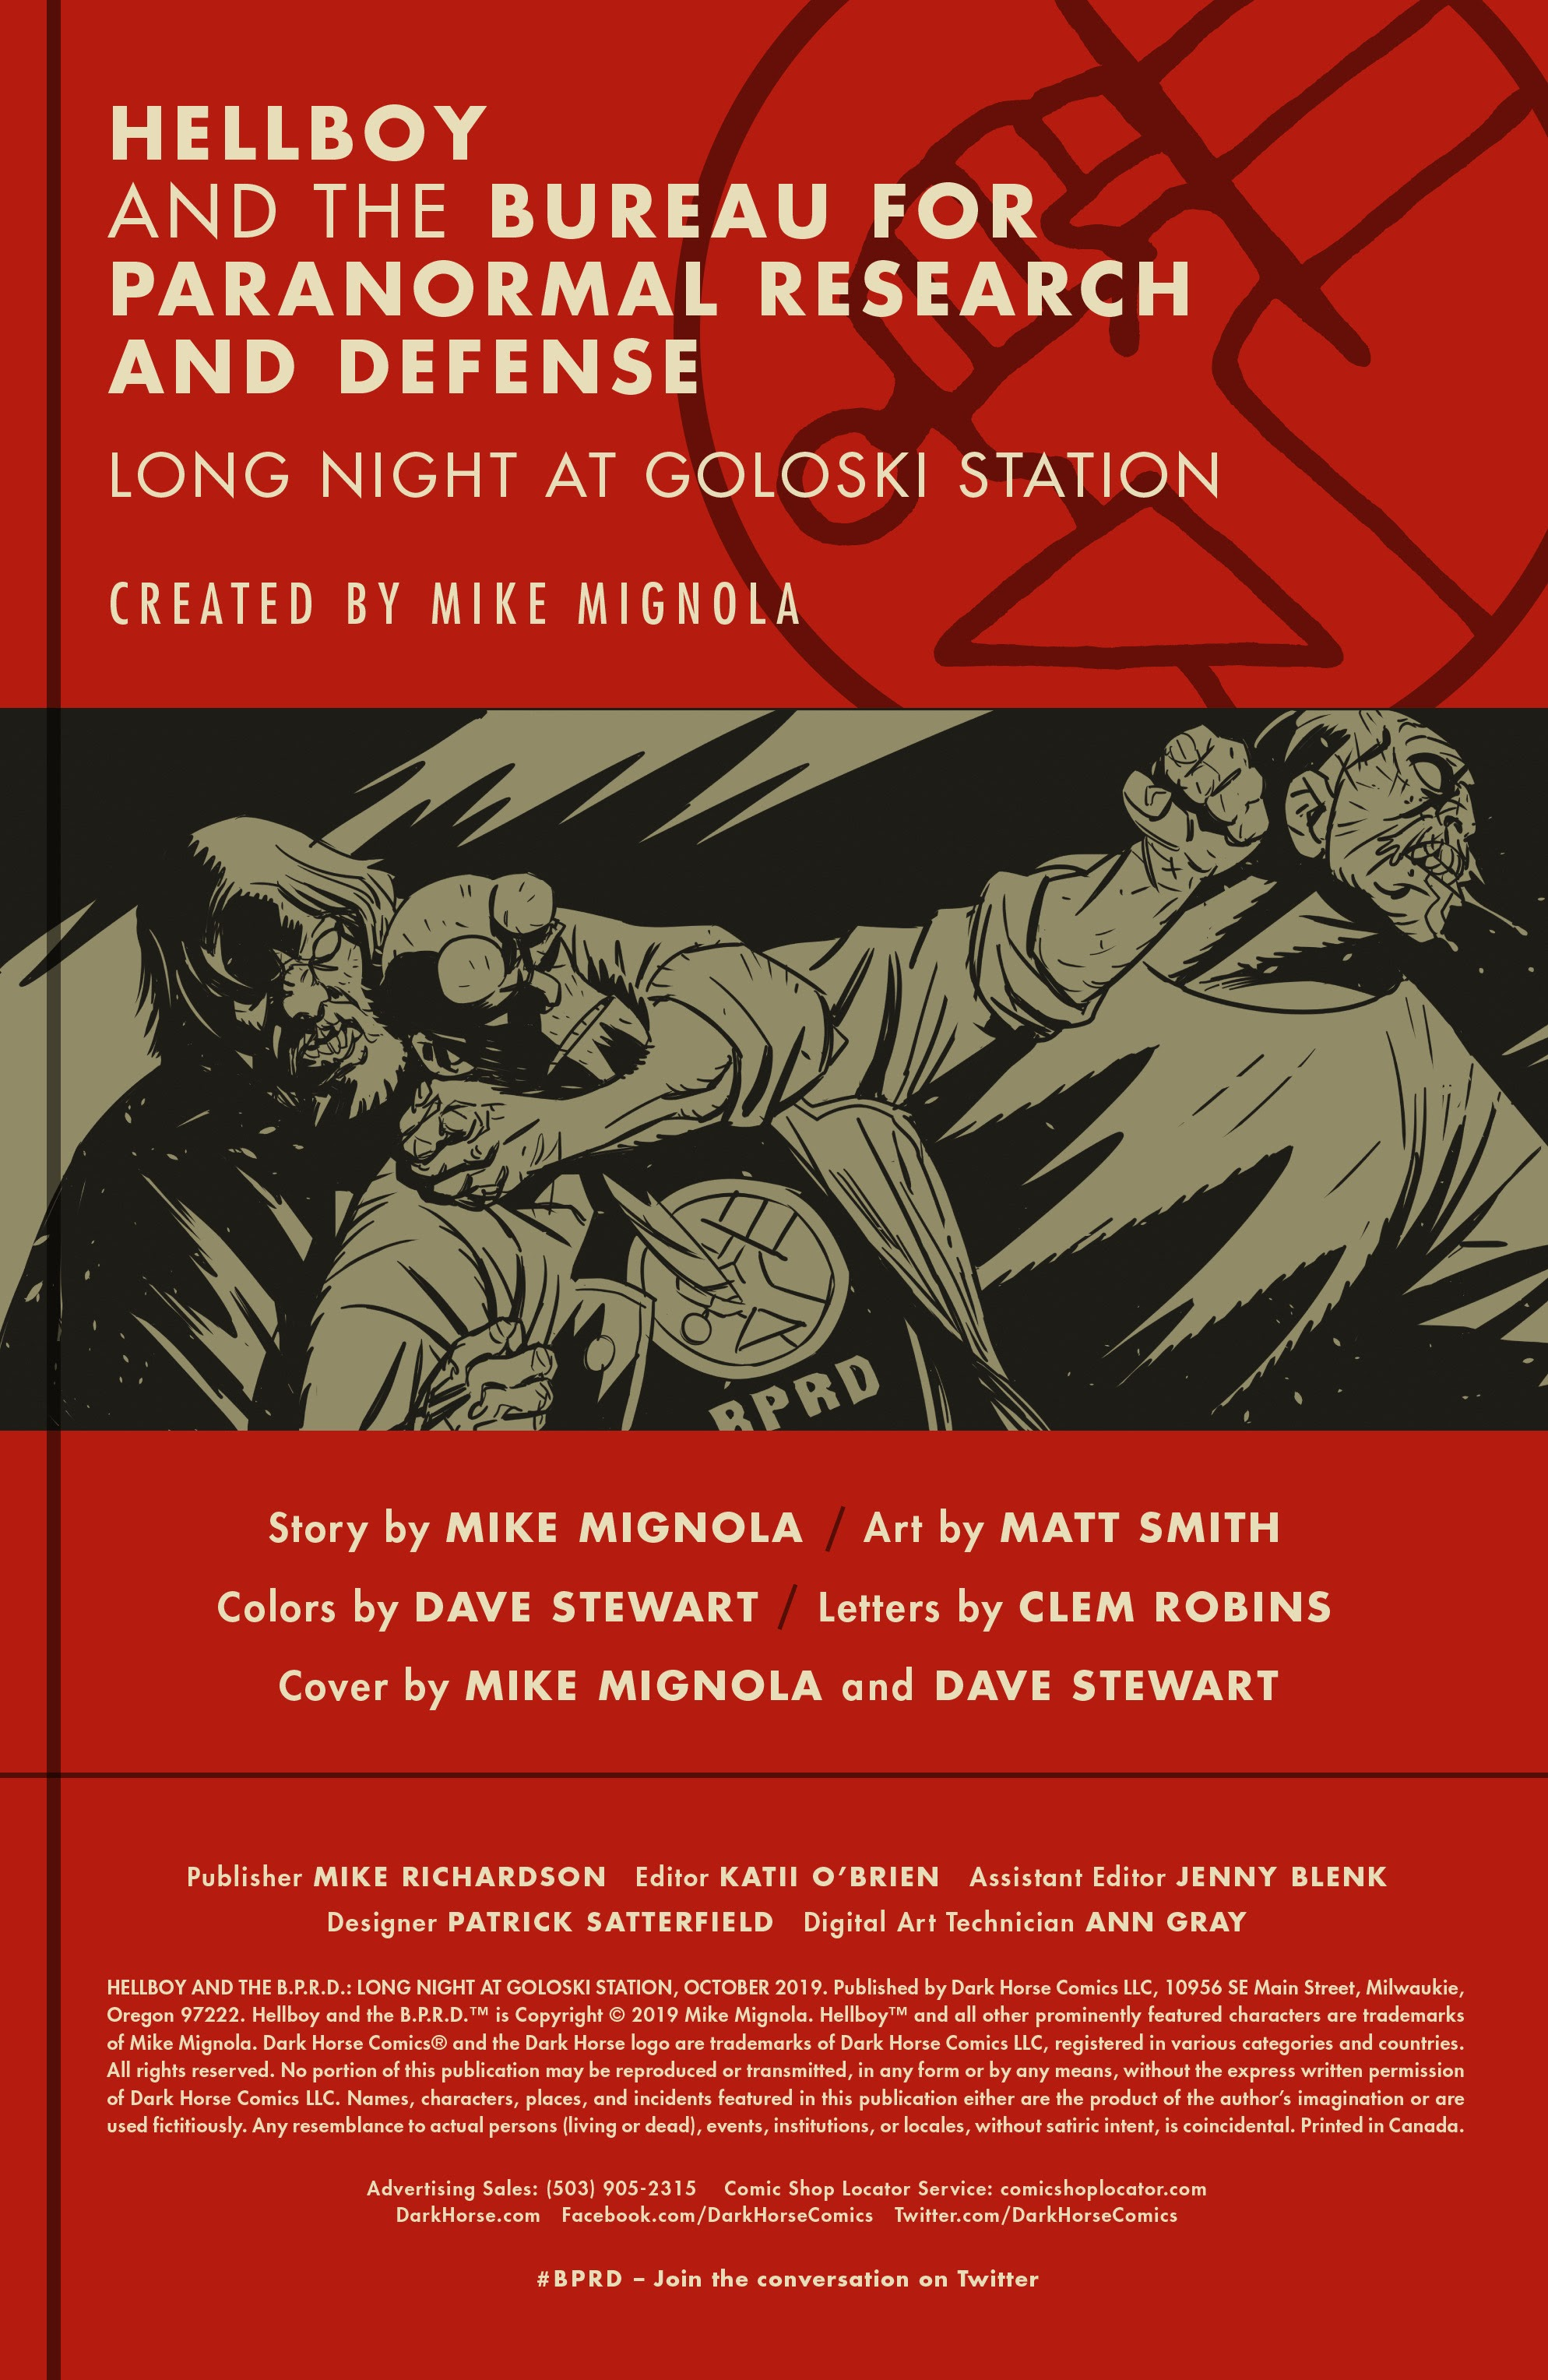 Hellboy and the B.P.R.D.: Long Night at Goloski Station Full Page 2